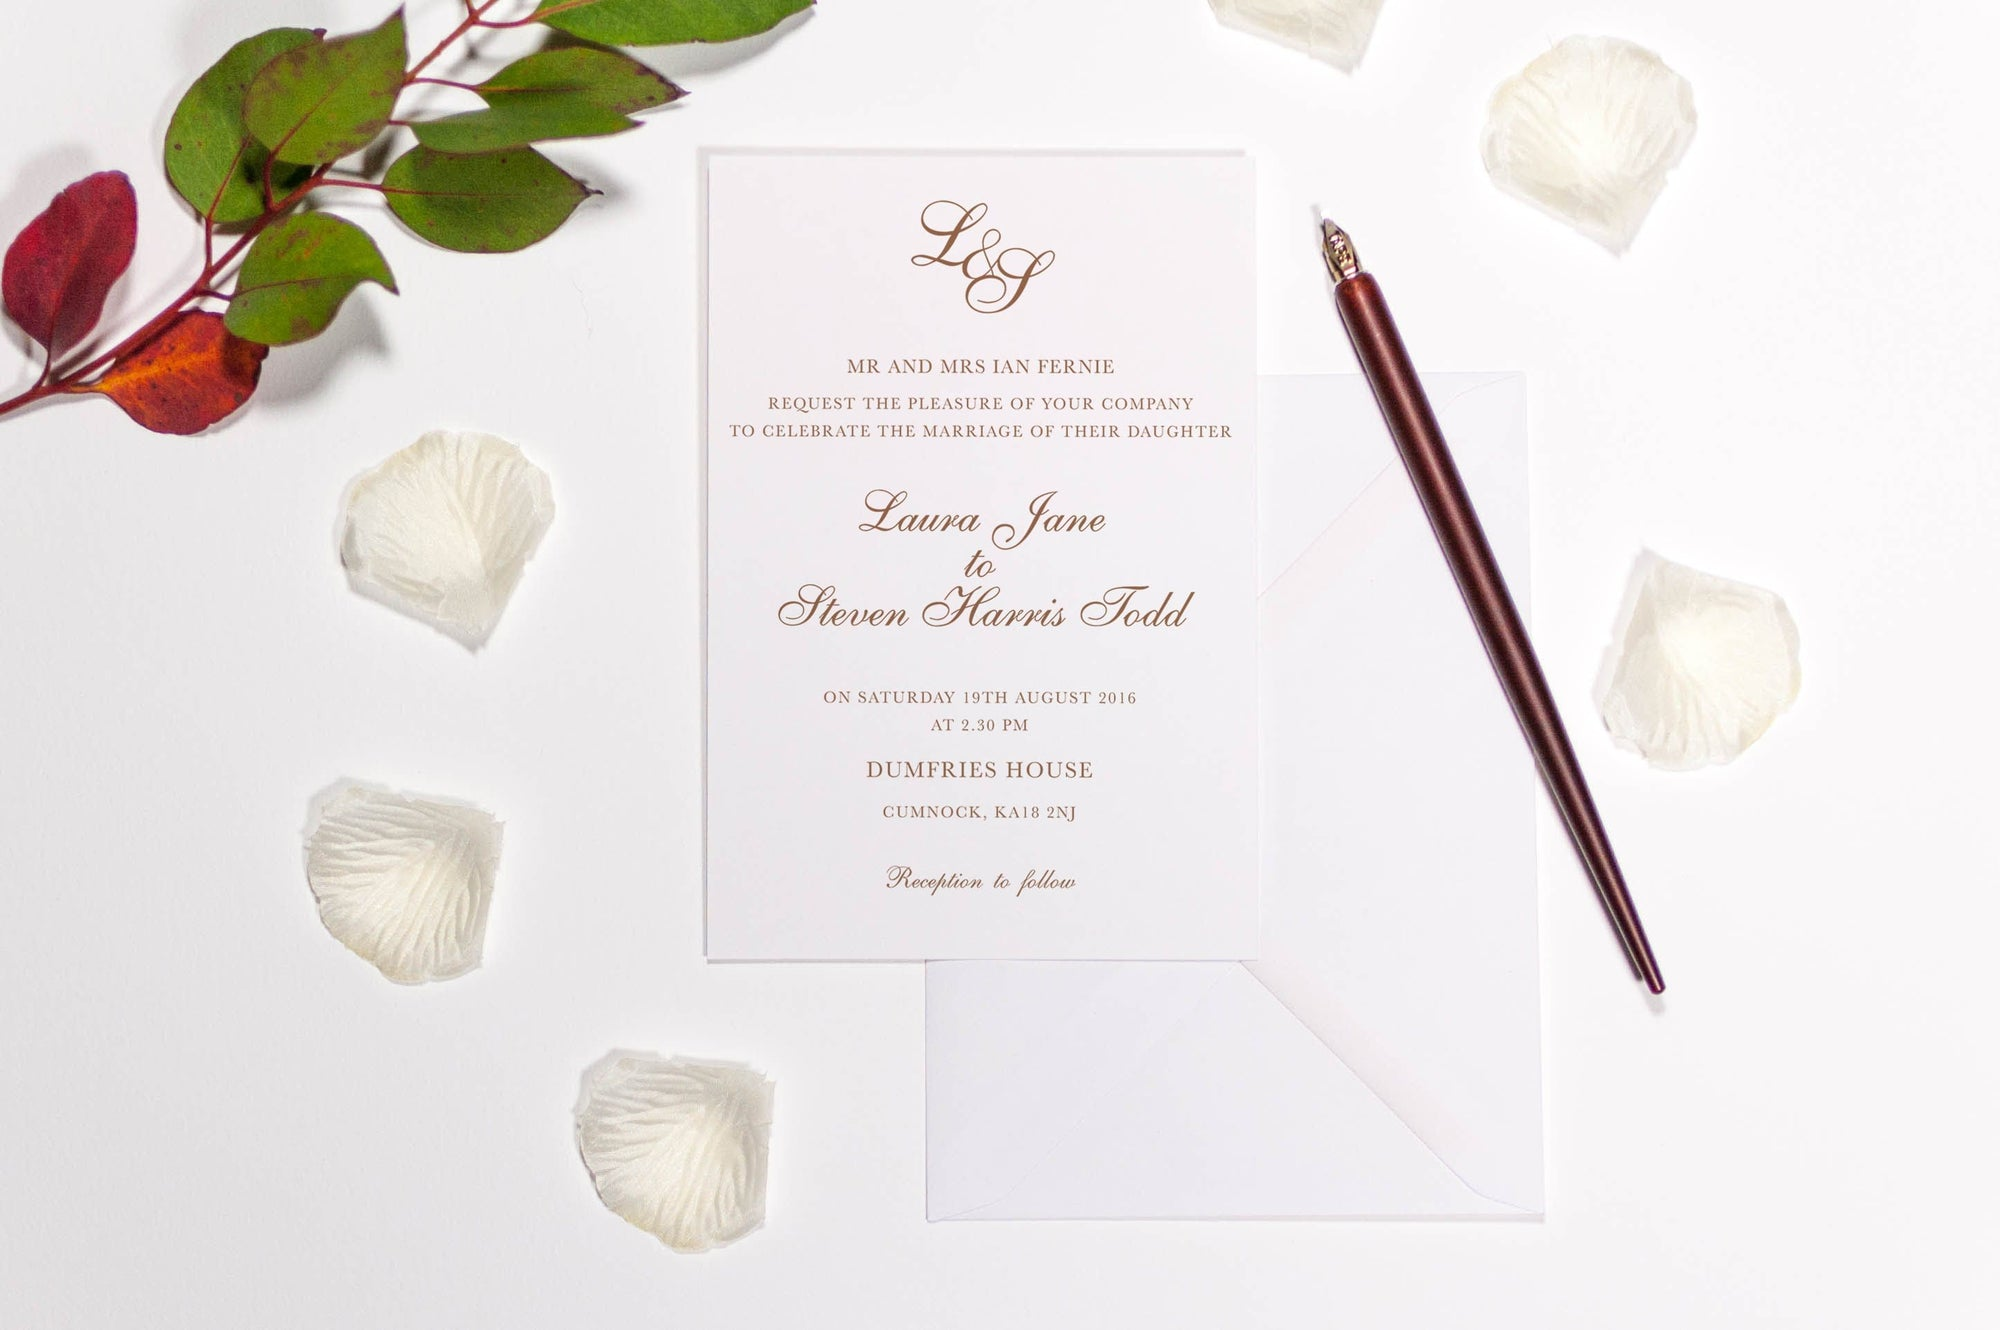 luxuryweddinginvitationsbycombossa HD Printed Wedding Invitations Script Monogram Wedding Invitation, HD Digital Print